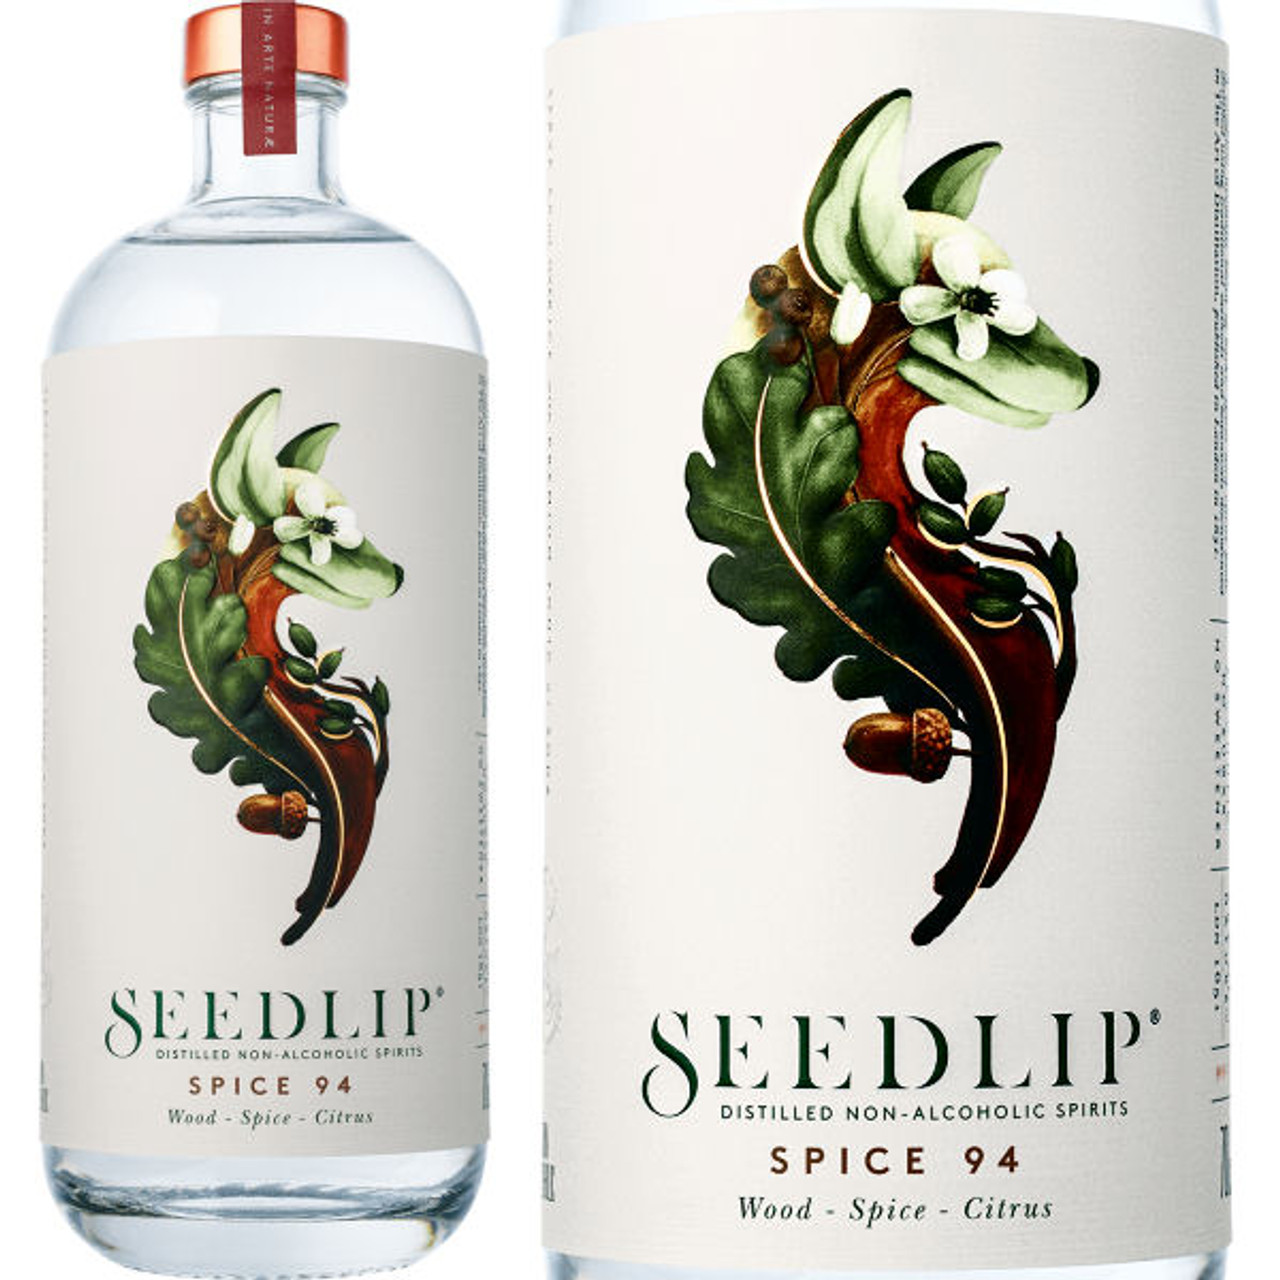 Seedlip Spice 94 Distilled Non-Alcoholic Spirits 700ml